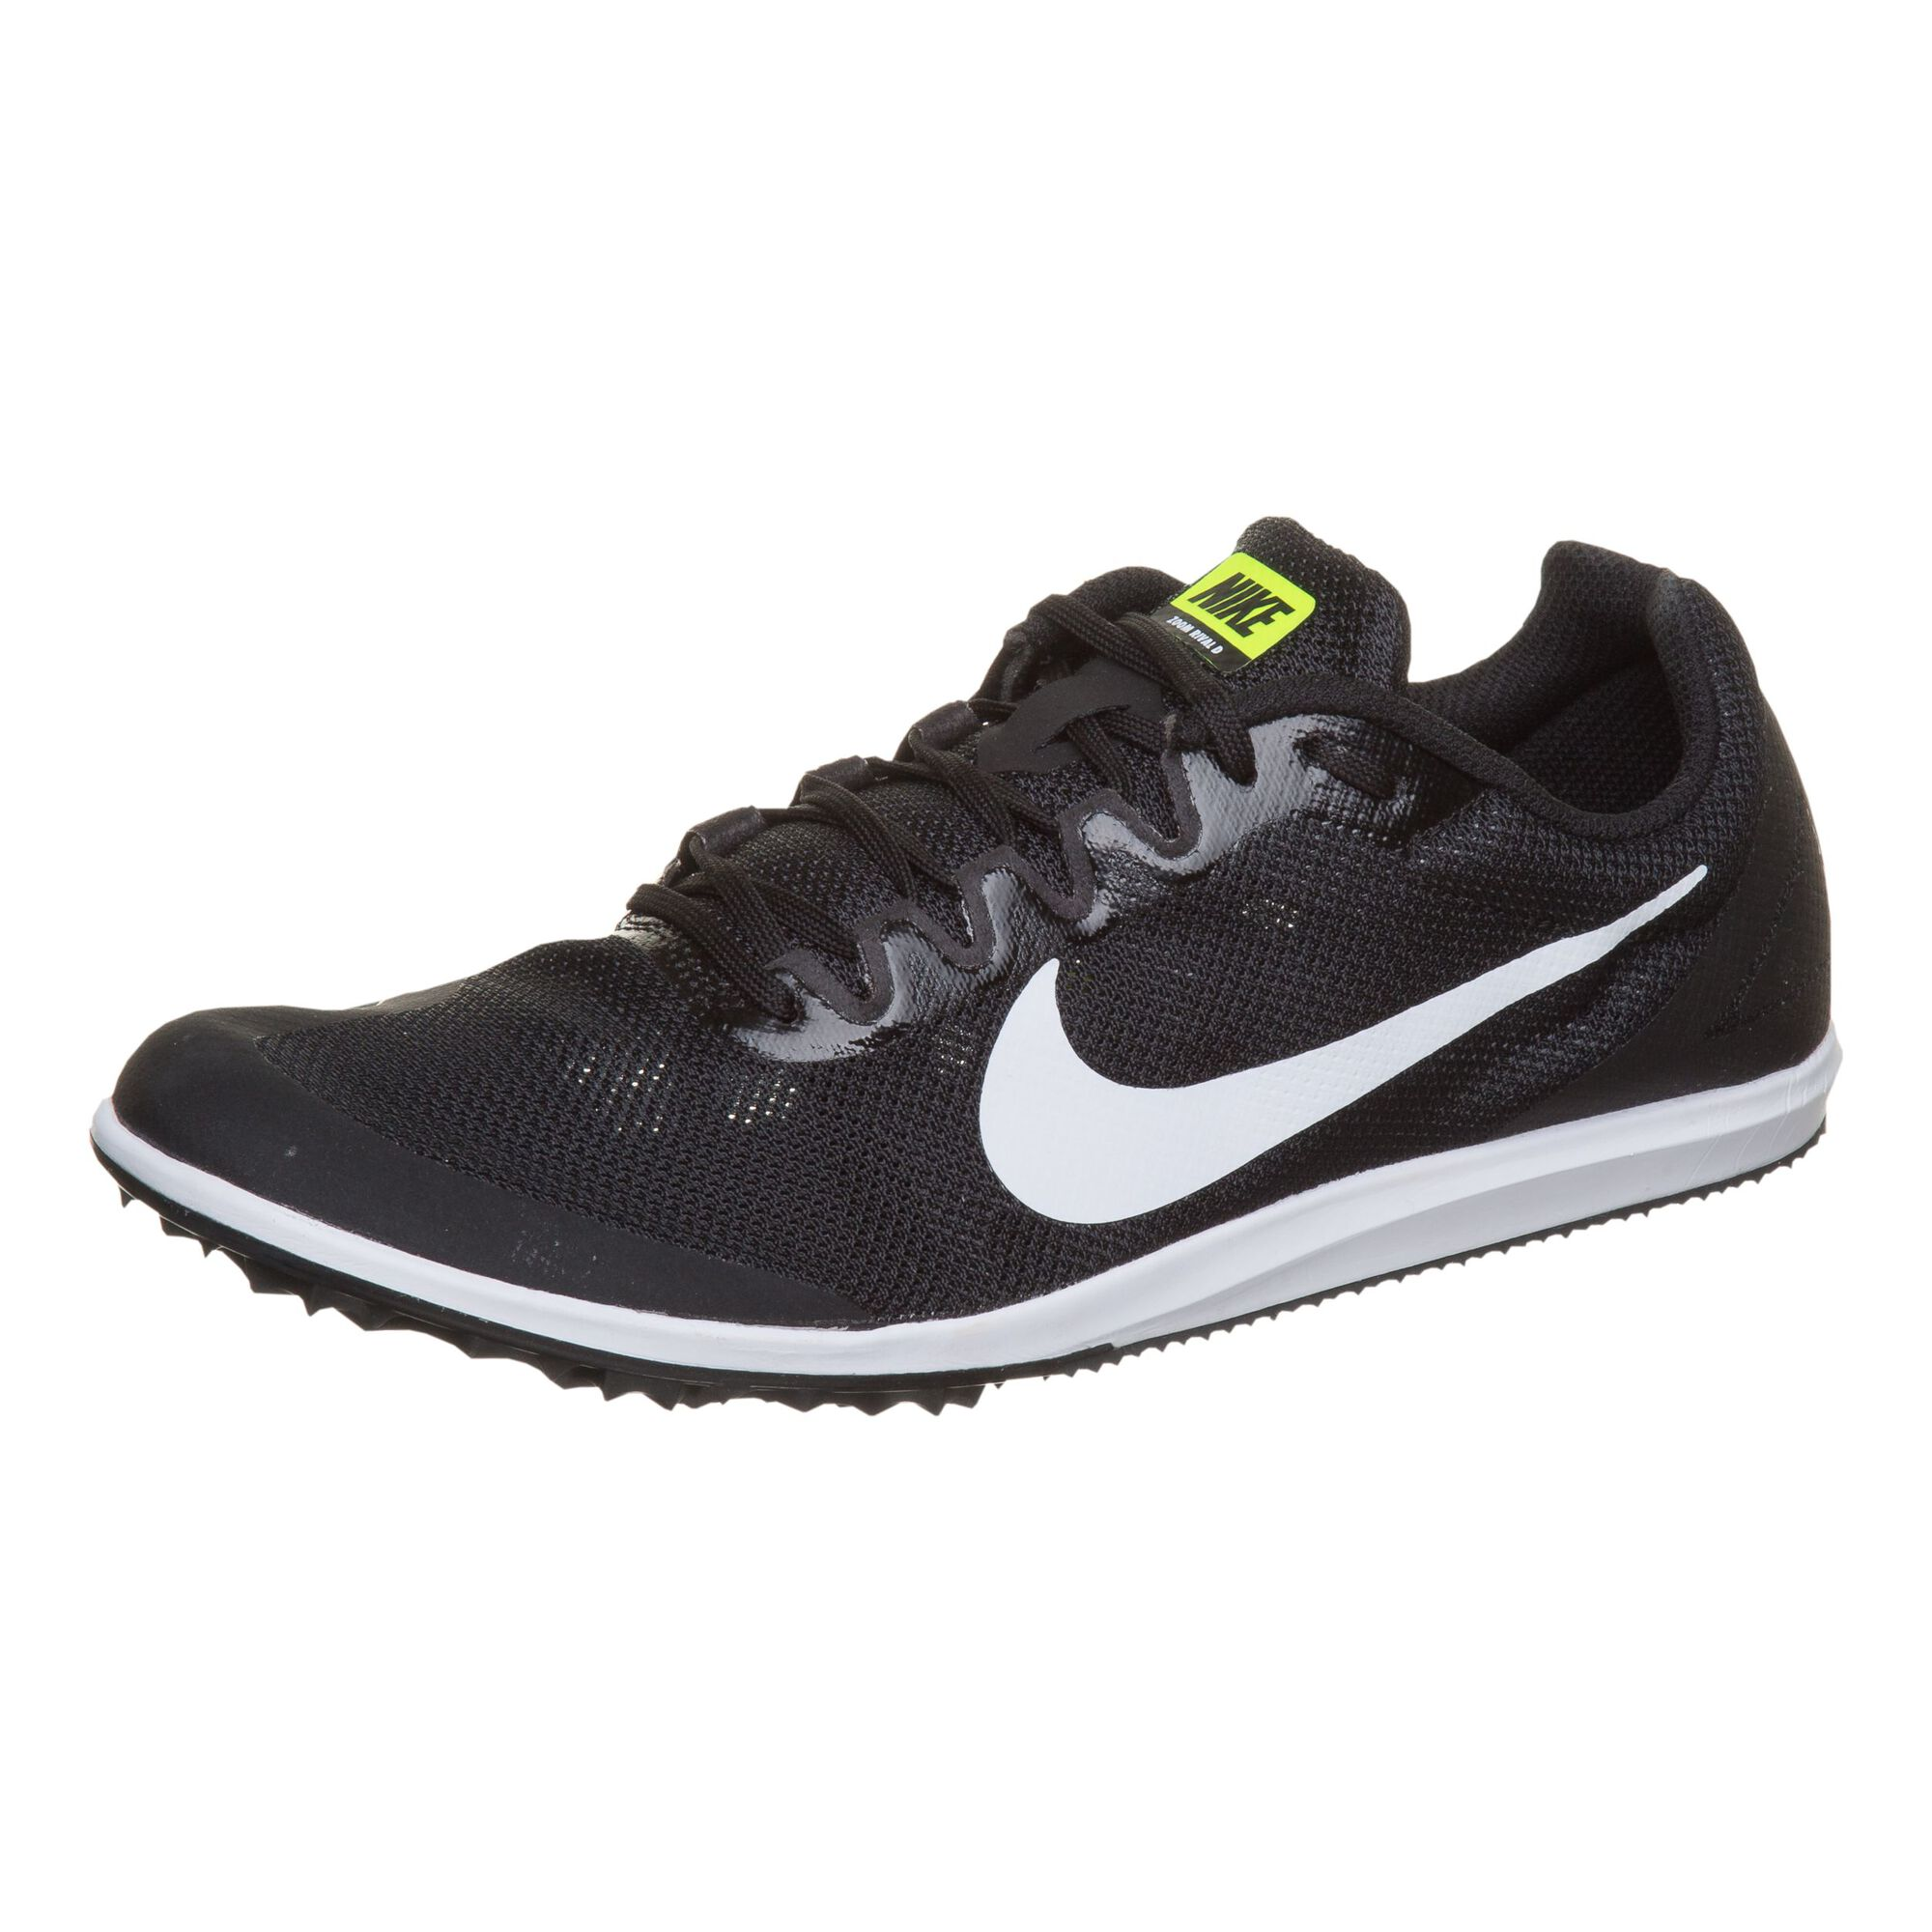 size 40 4b1ec 00352 buy Nike Zoom Rival D 10 Spike Shoes - Black, White online   Jogging ...